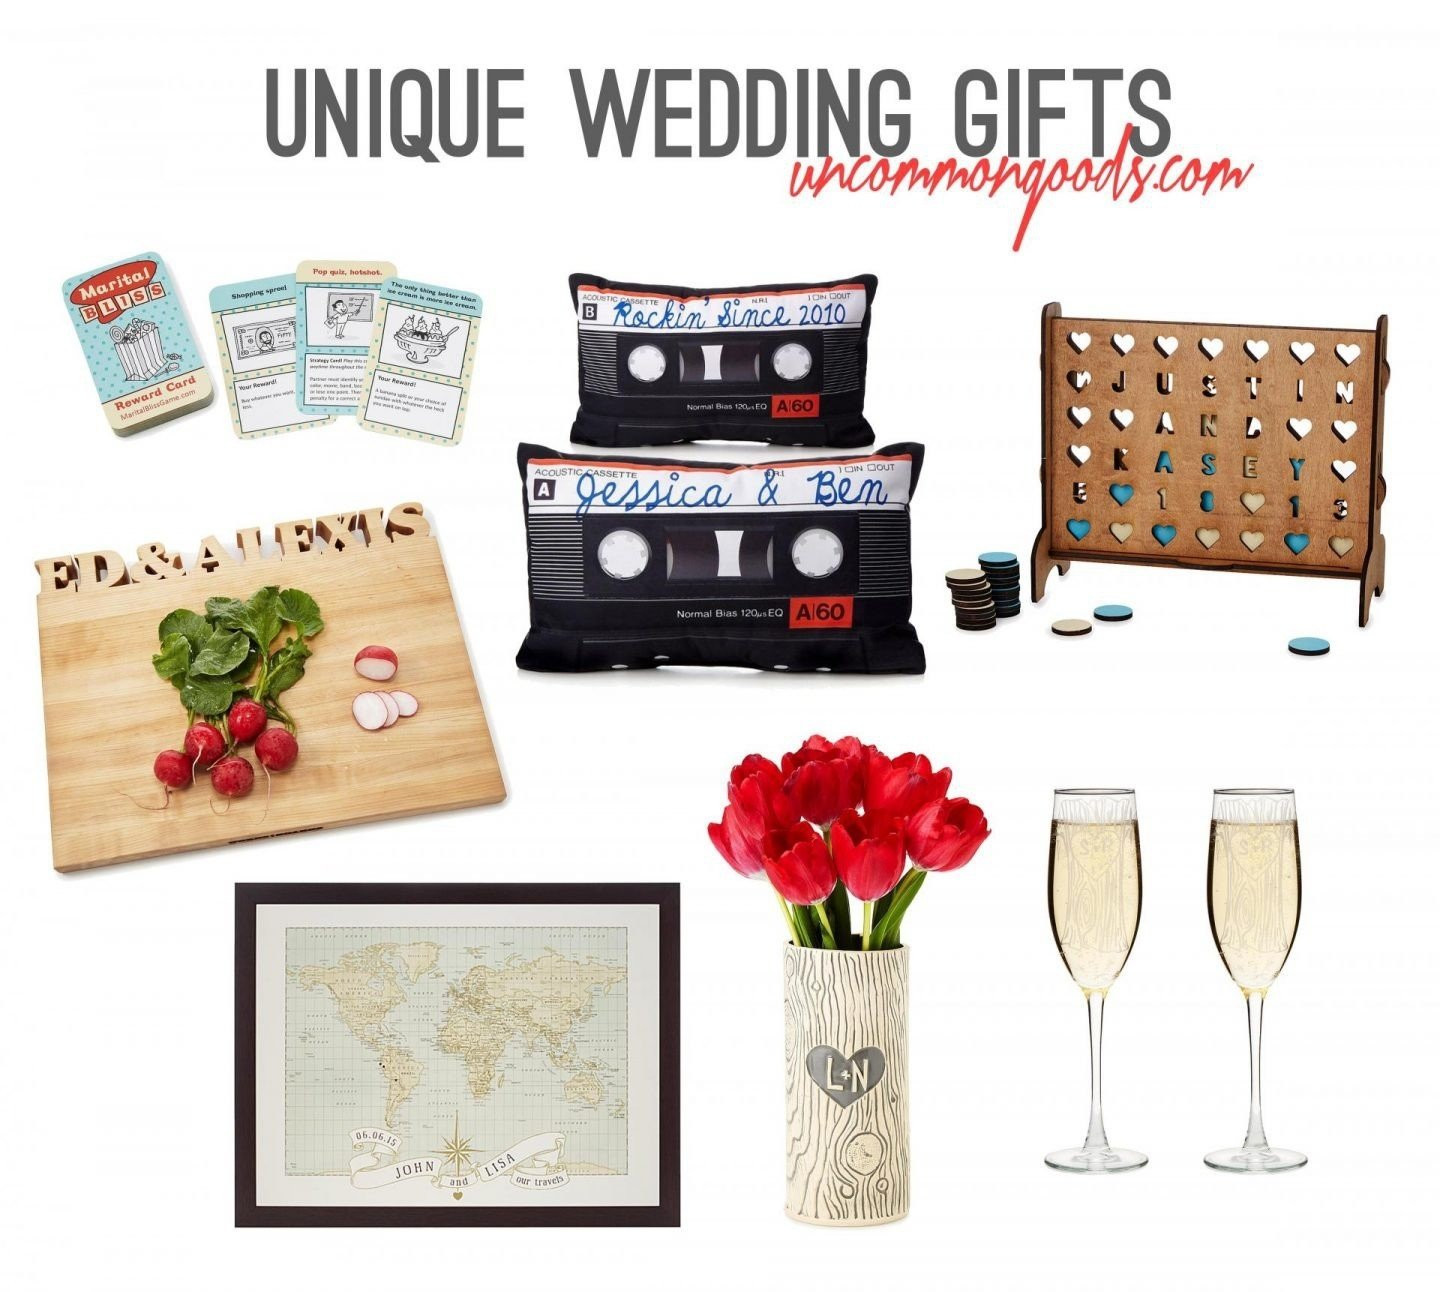 Wedding Gift Ideas For Older Couples Second Marriage  10 Fashionable Wedding Gift Ideas For Second Marriages 2019